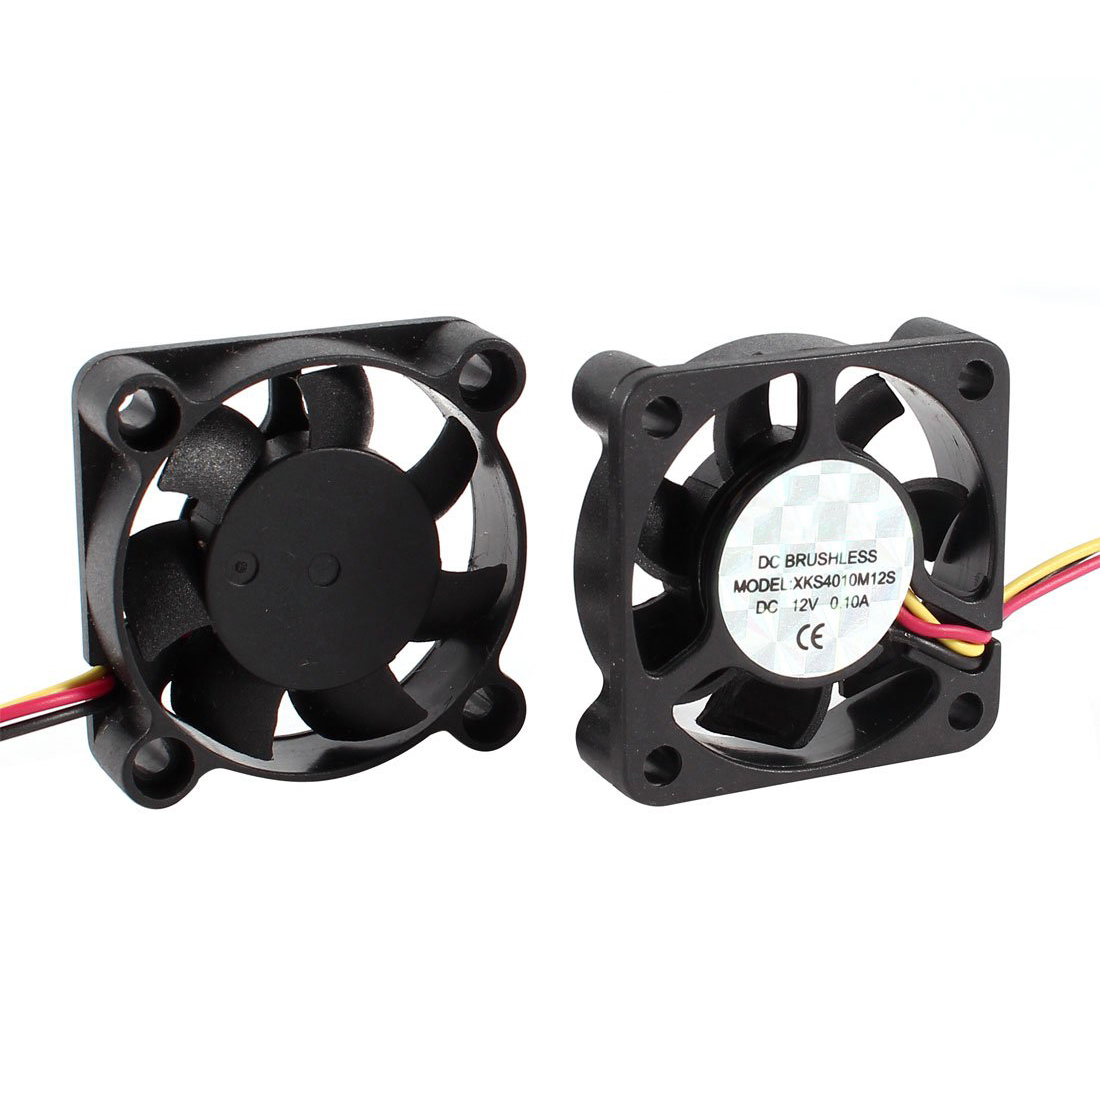 YOC-2 Pcs 3 Pin 40mm Square PC Computer Cooling Fan DC 12V Black